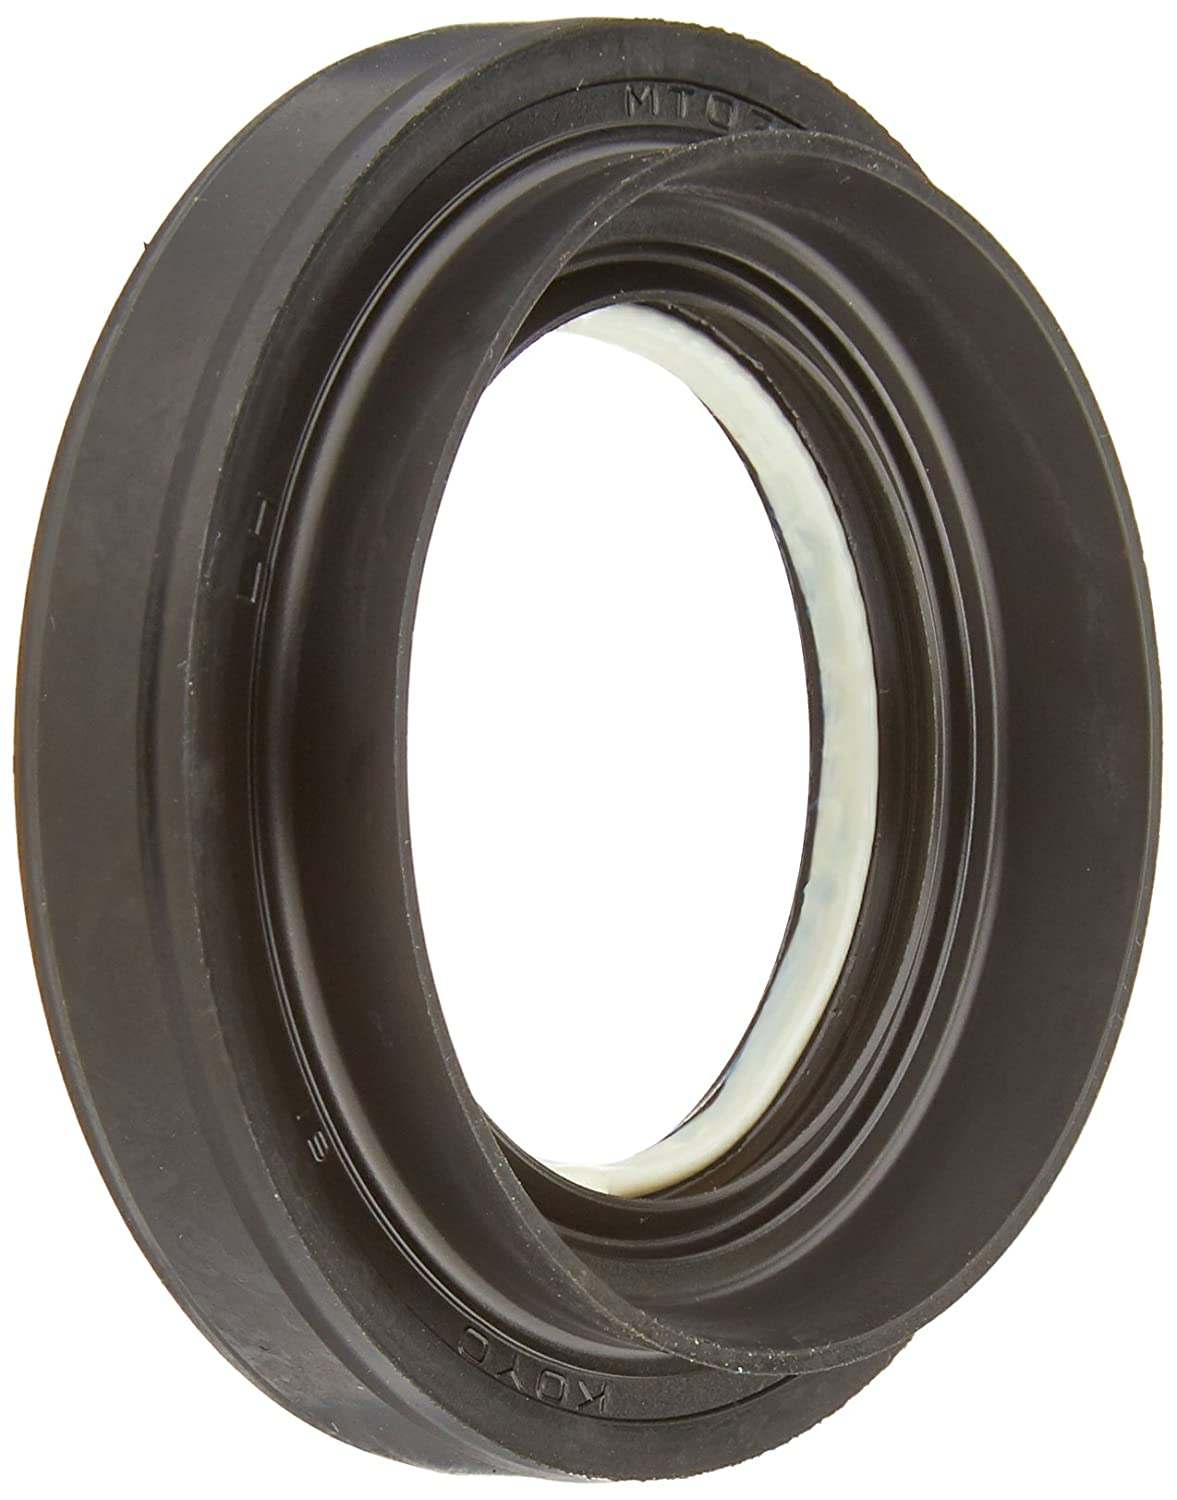 Genuine Toyota 90311-35054 Type-T Oil Seal